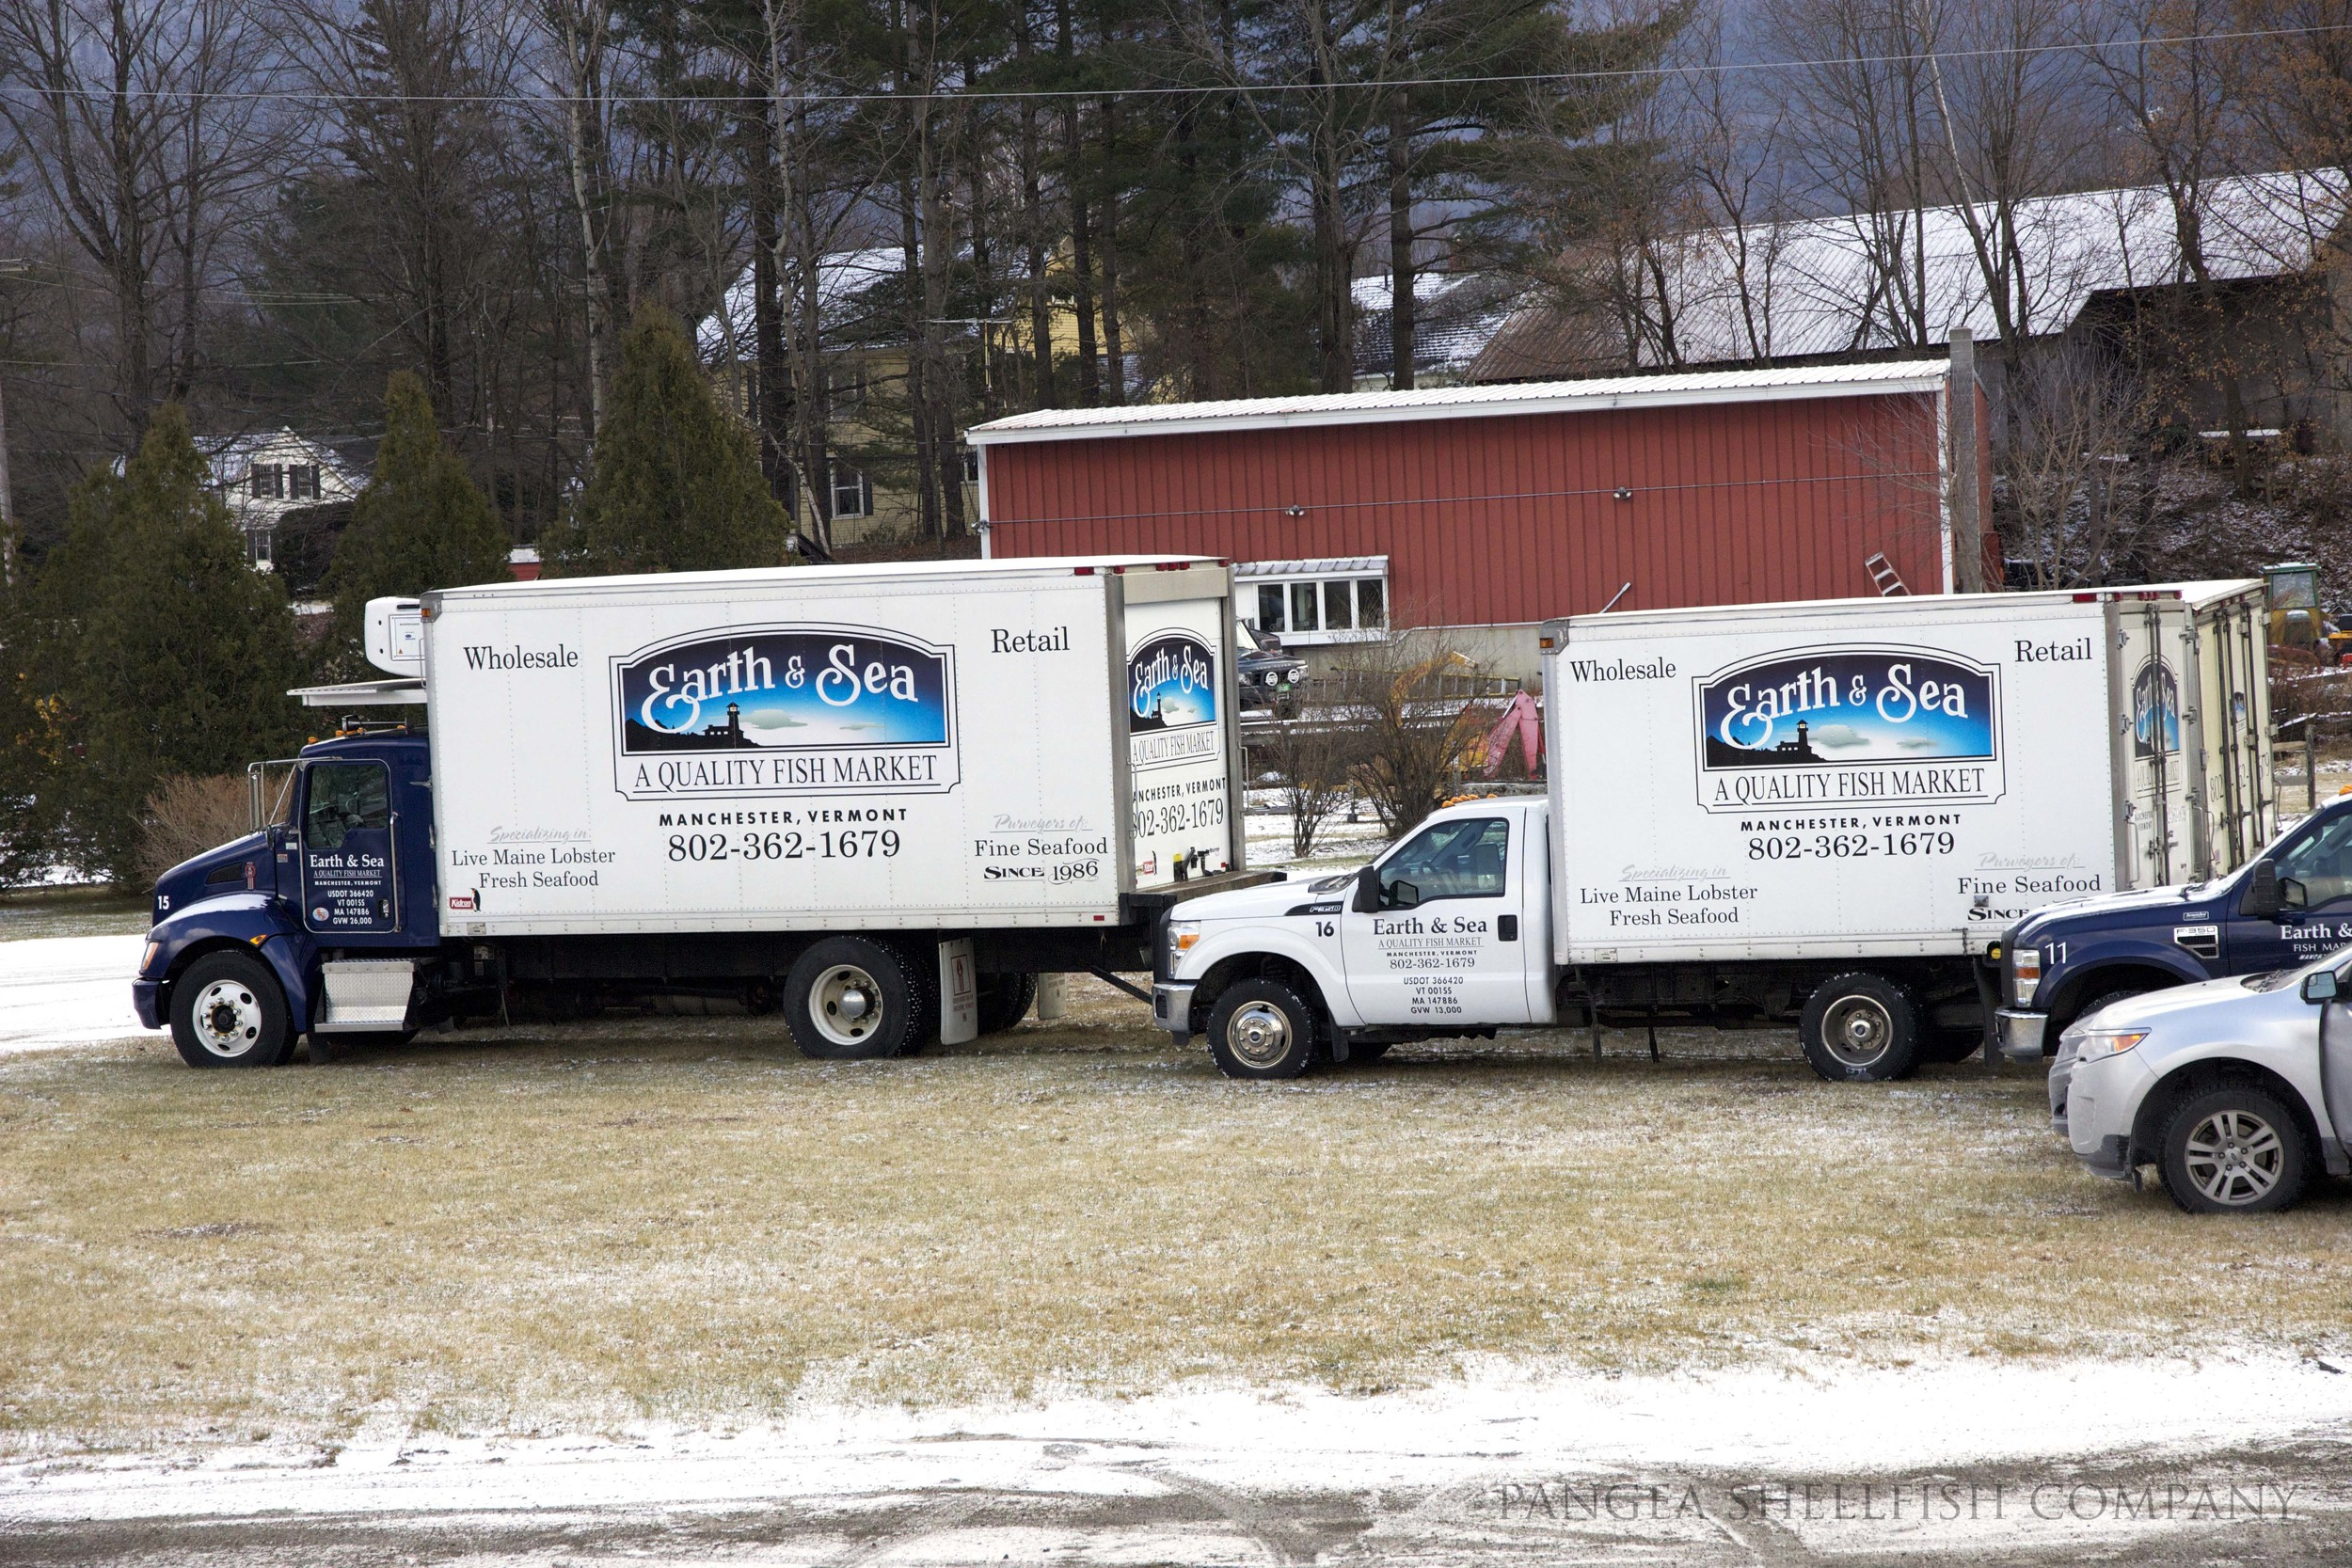 Earth & Sea have their own fleet of trucks picking up fresh oysters from our Boston shop at least twice a week.